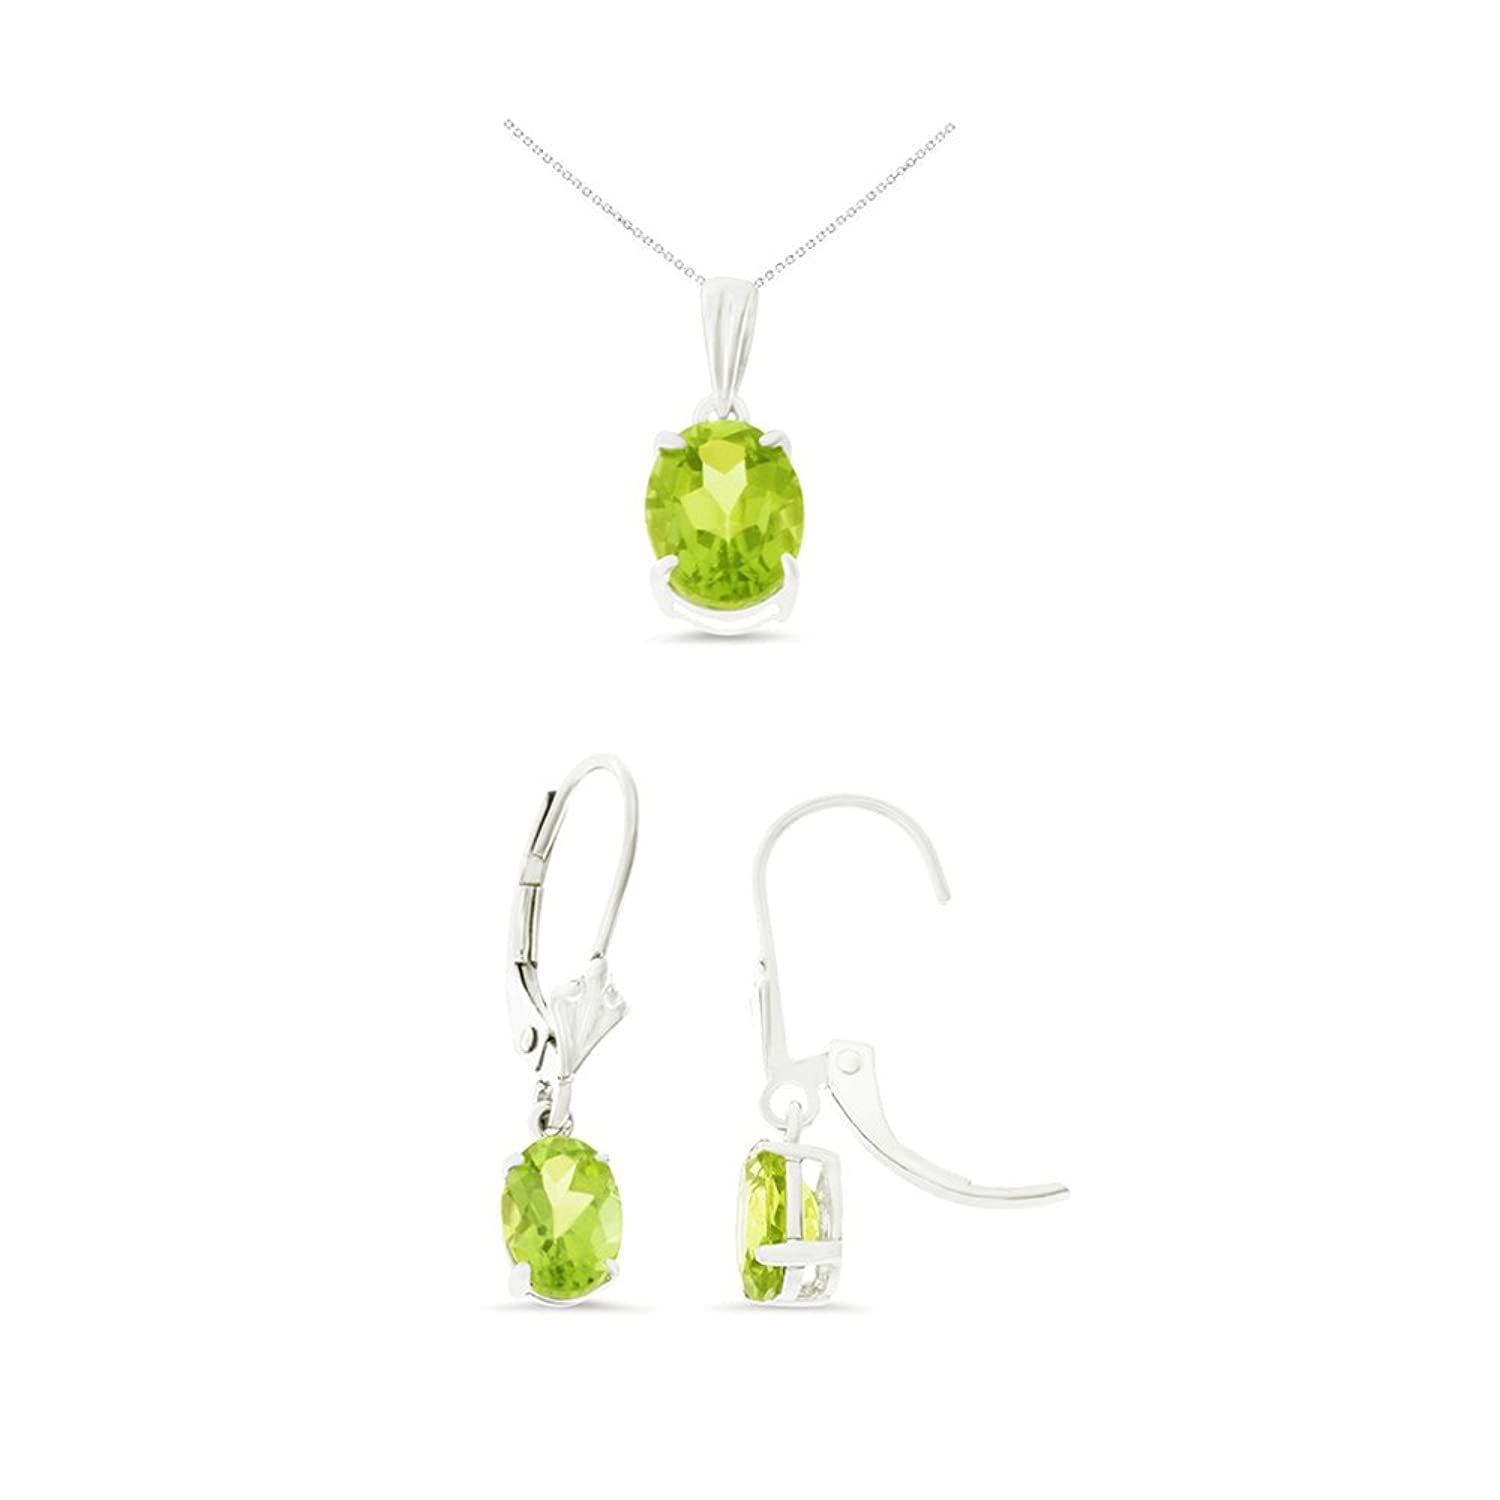 14K White Gold Oval Shaped Genuine Peridot Leverback Earrings + Pendant With Square Rolo Chain Necklace